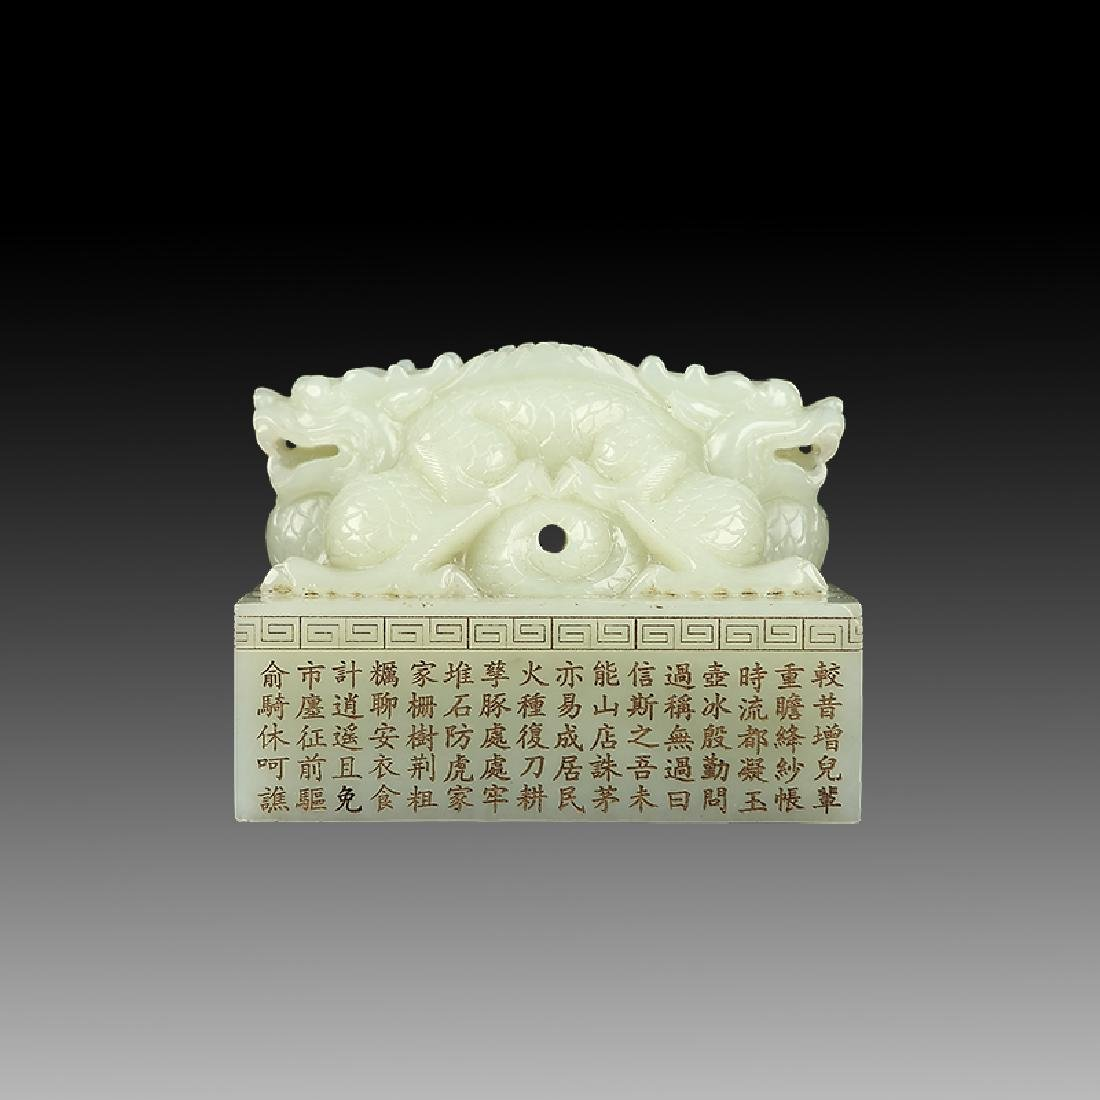 Chinese Qing Dynasty White Hetian Jade Dragon Seal - 5